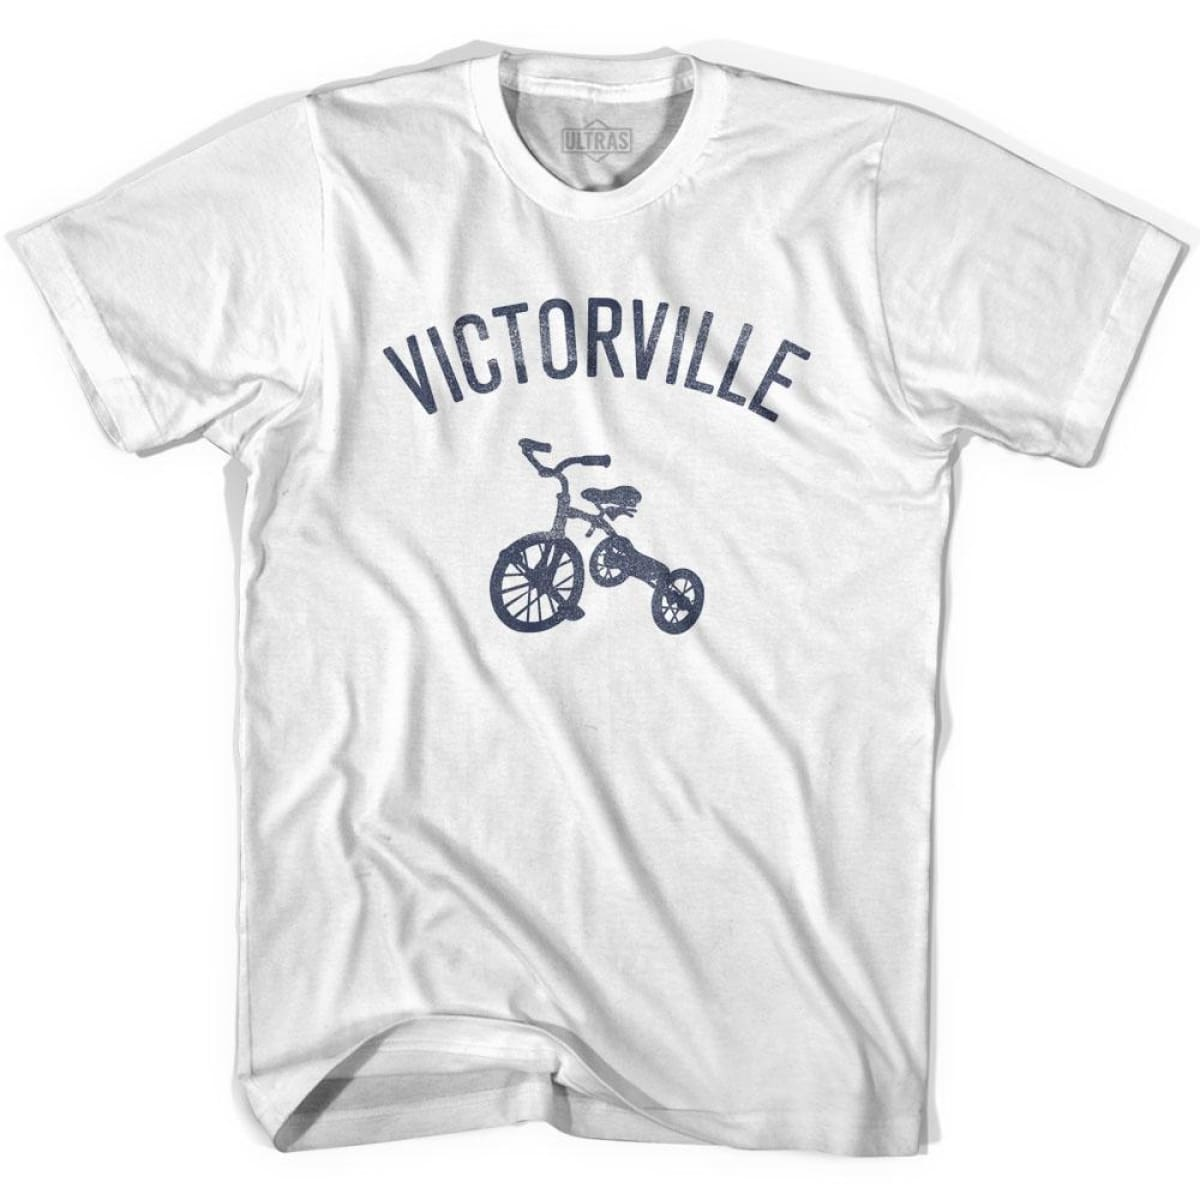 Victorville City Tricycle Youth Cotton T-shirt - Tricycle City